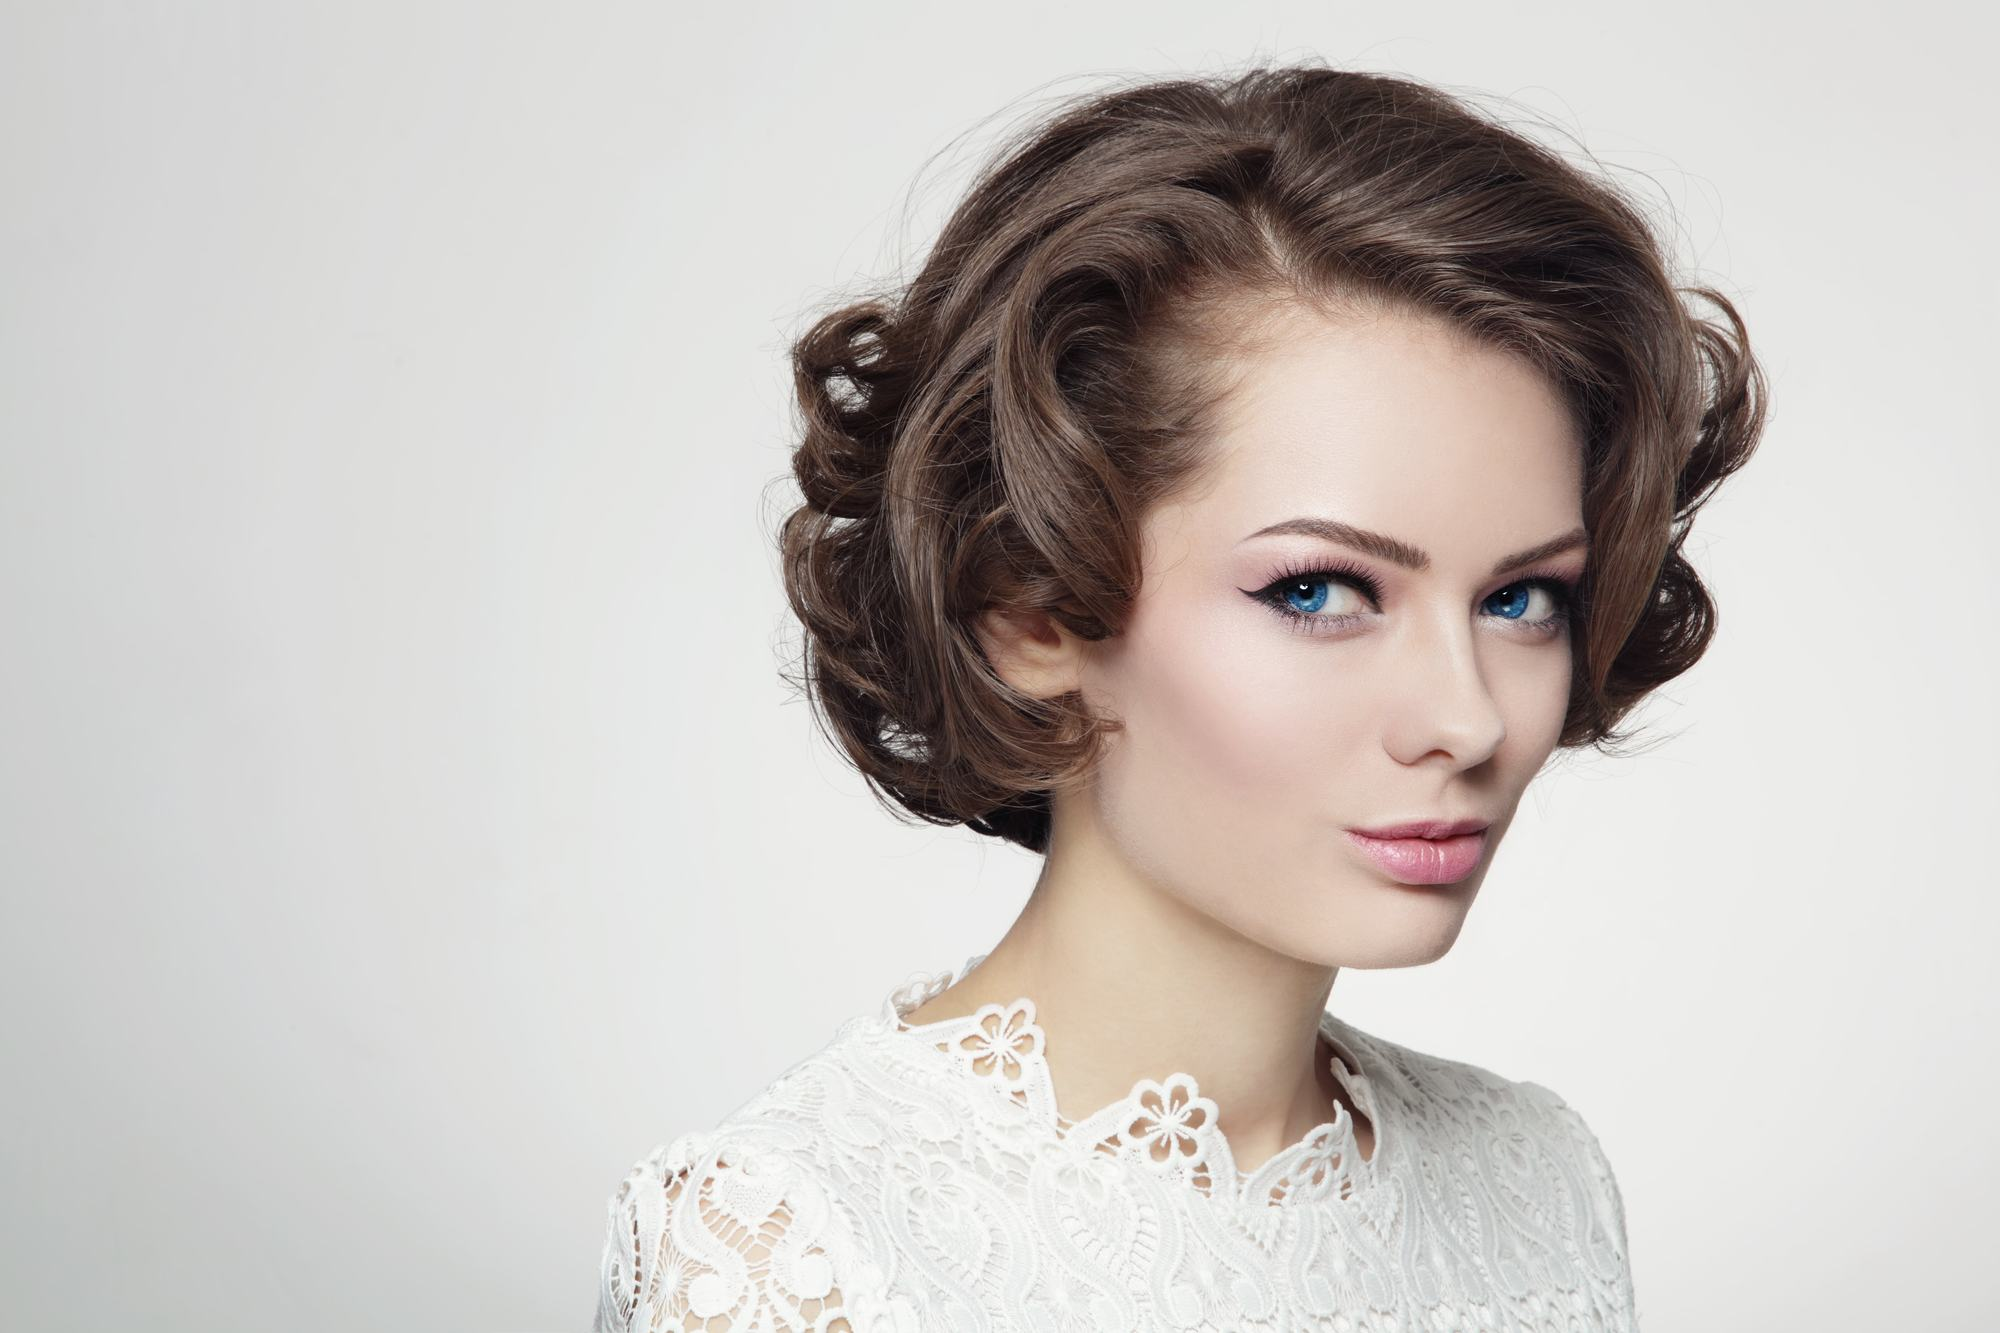 Astonishing 1960S Hairstyles 3 Ways To Wear Iconic Vintage Looks Hairstyles For Women Draintrainus